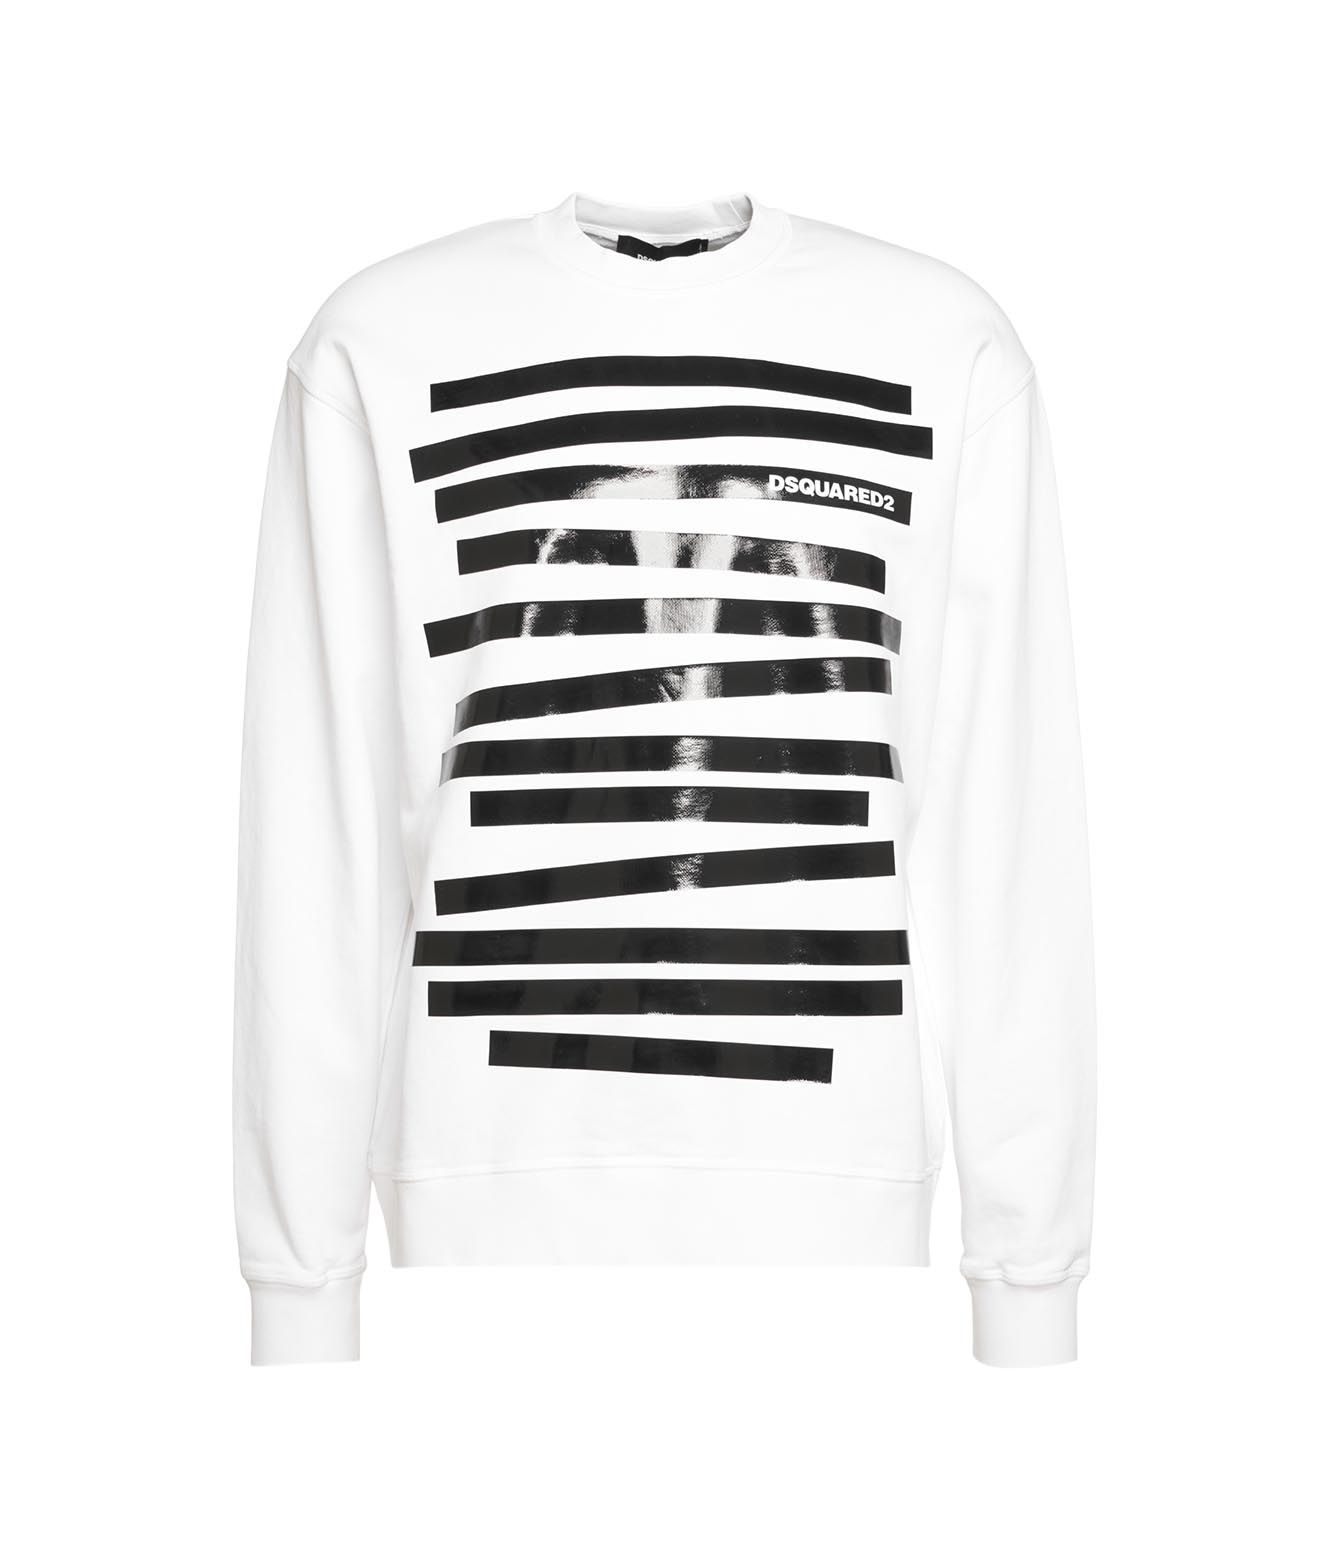 Dsquared2 Cottons DSQUARED2 MEN'S S71GU0436S2546211100 WHITE OTHER MATERIALS SWEATSHIRT